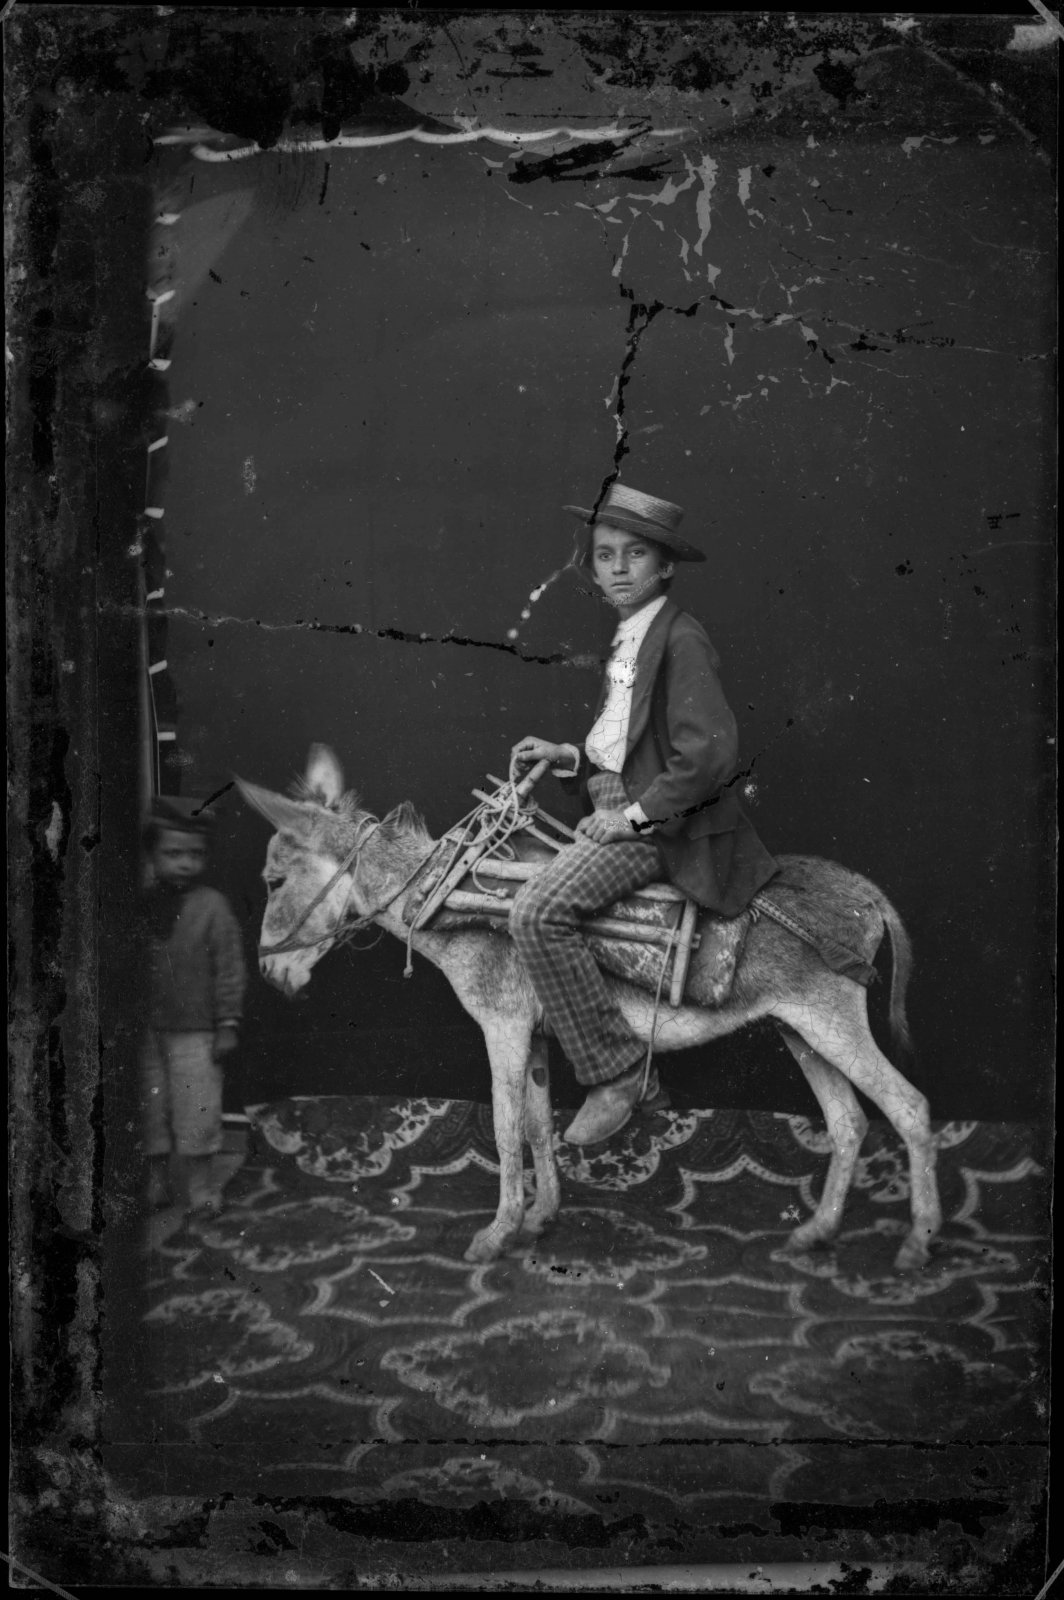 Untitled, before 1881, Pietro Marubi, wet plate © Marubi National Museum of Photography, Shkodër